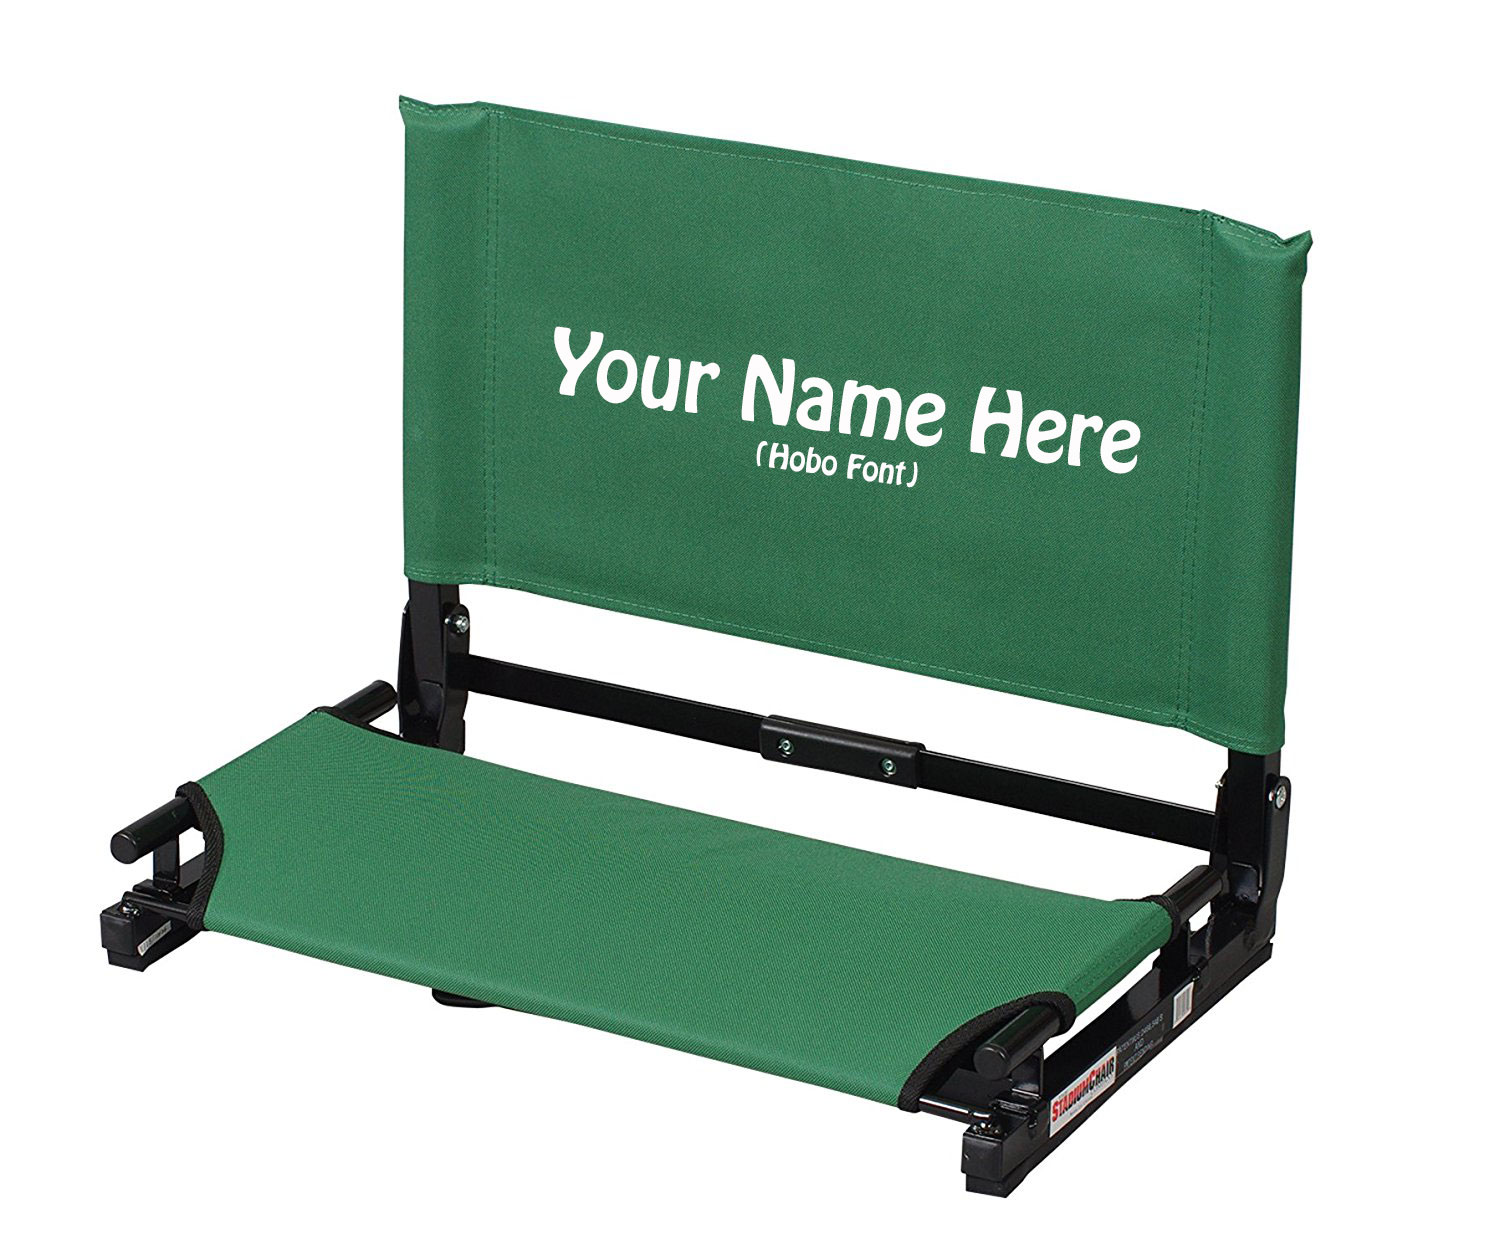 EMBROIDERED Personalized NEW Deluxe Wide Stadium Chair Gamechanger Bleacher Seat with Optional Arms